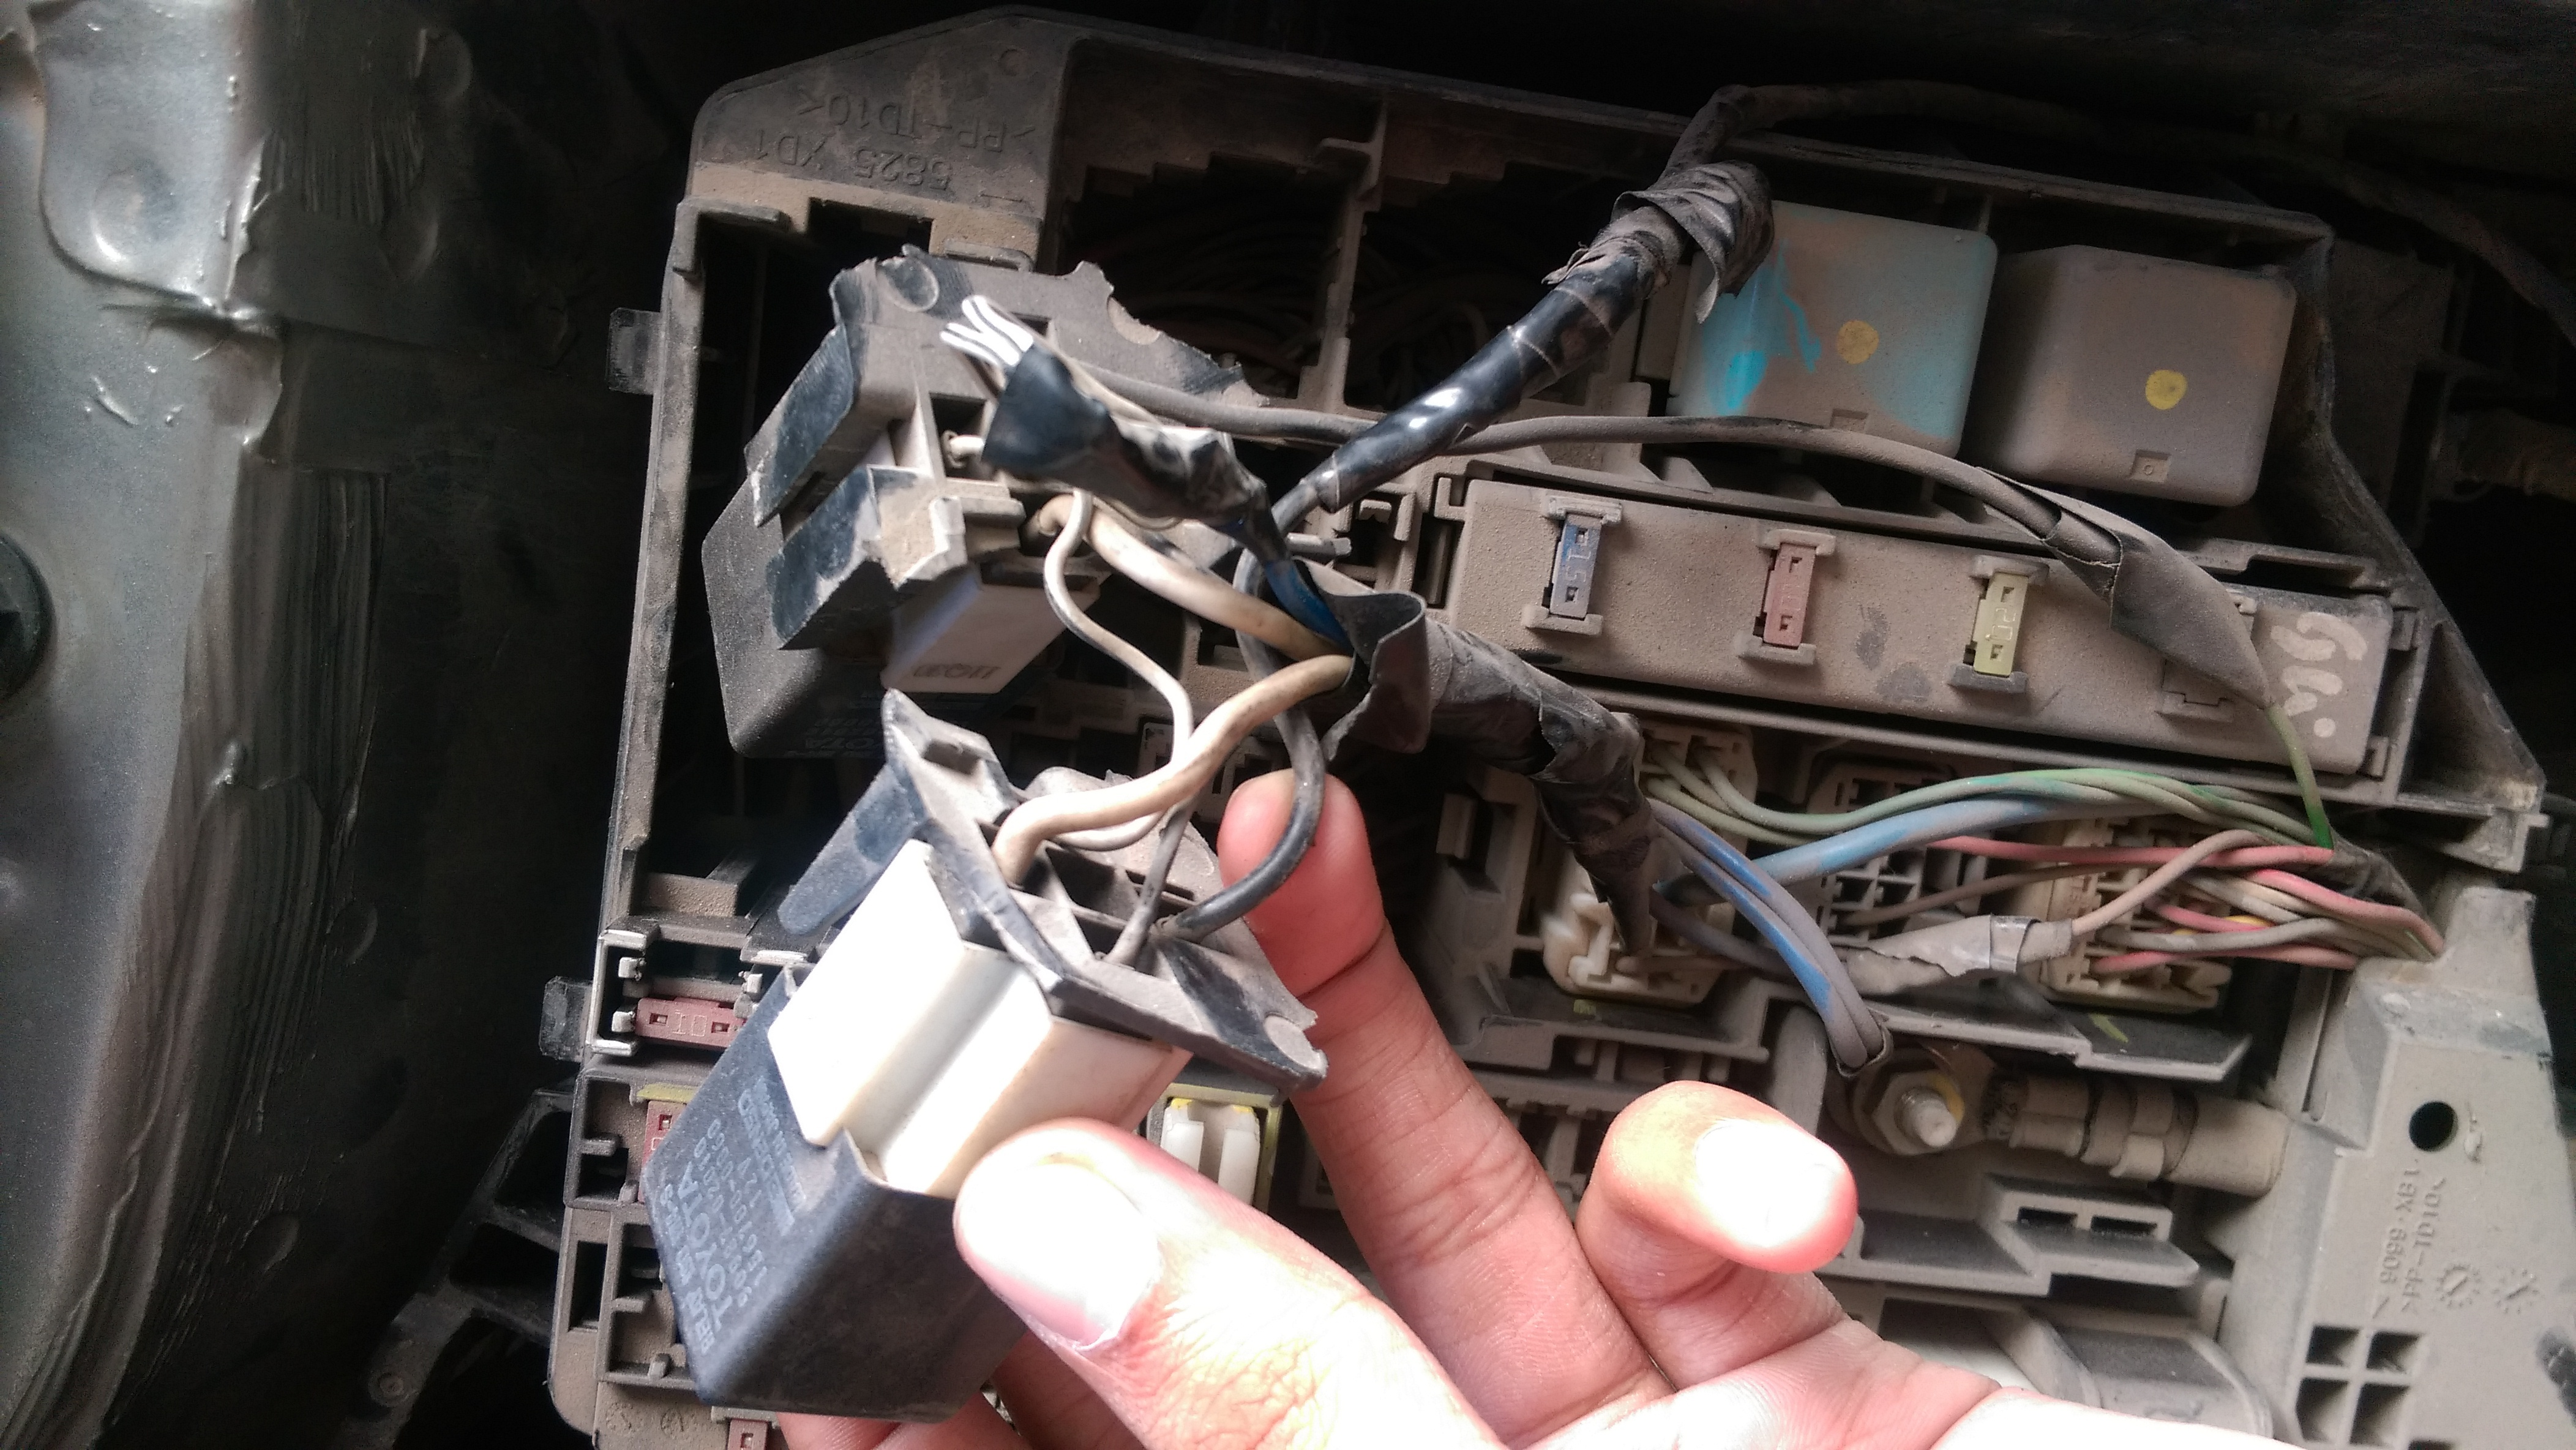 Corolla Gli Direct Radiator Fan Issue Help Needed Fuse Box That Black Wire Goes To This Relay In The Is On My Finger